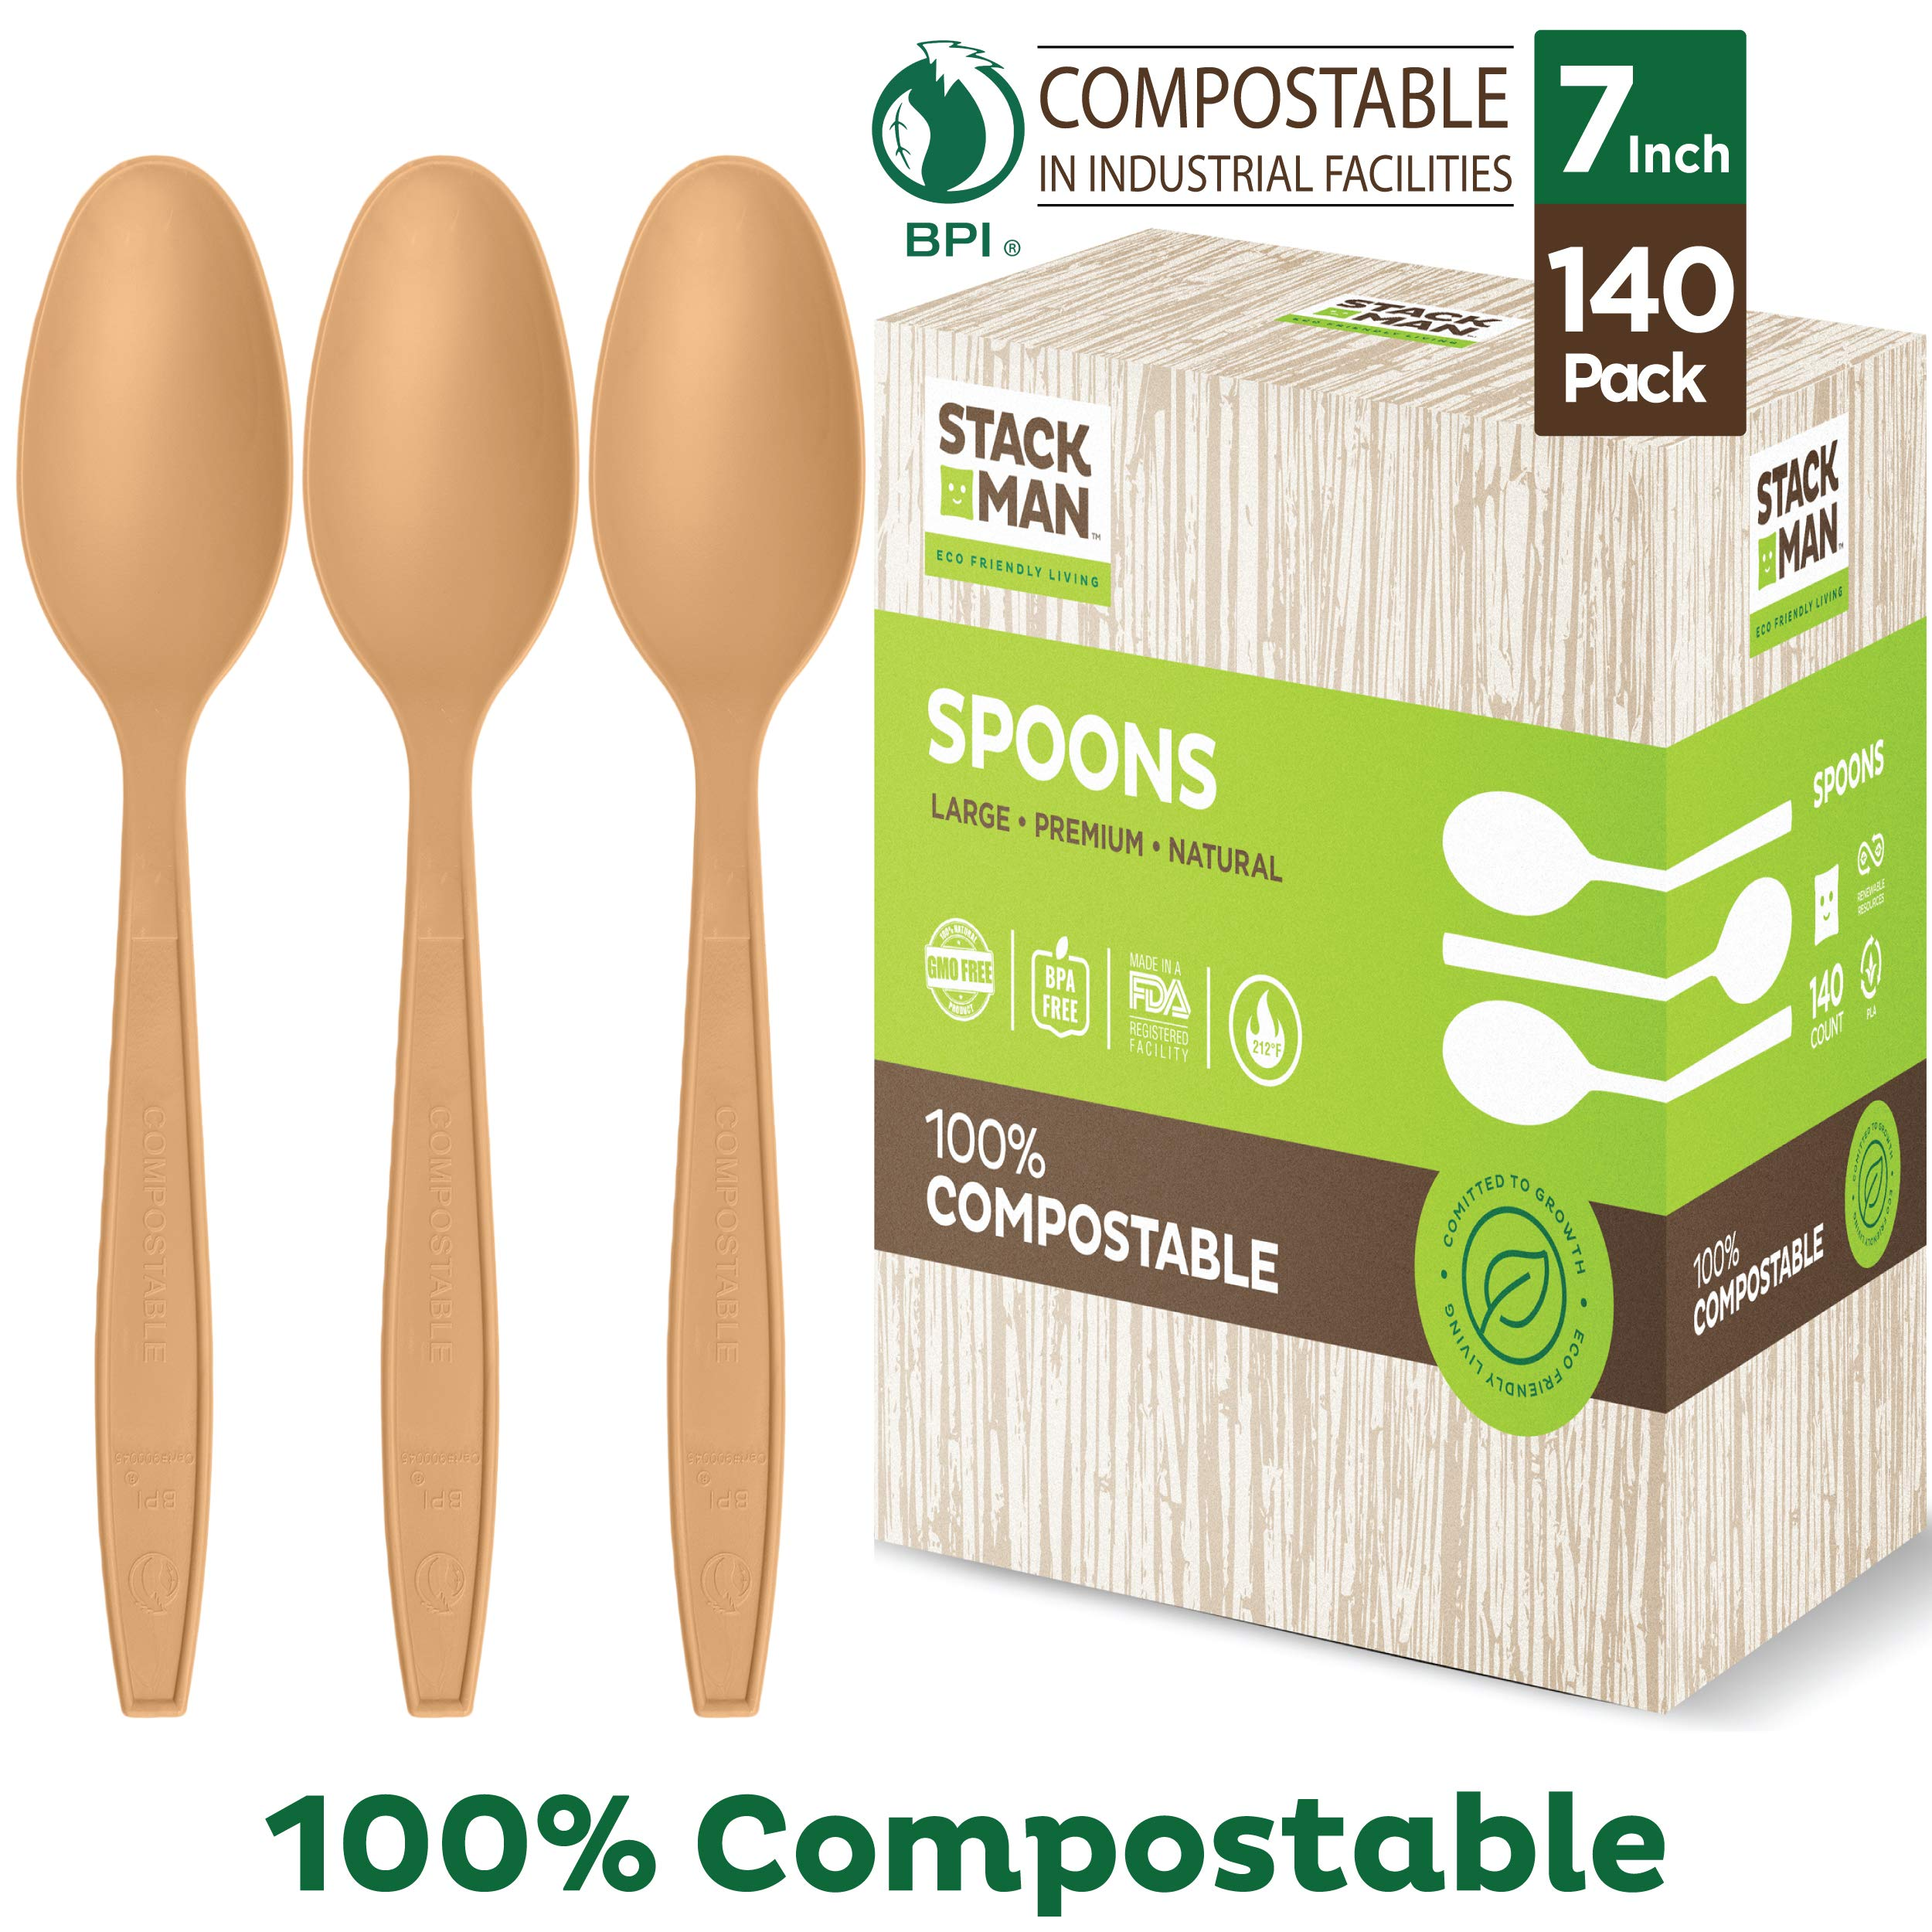 Stack Man Disposable Spoons [140 Pack] 100% Compostable Plastic Silverware, Large Premium Heavy-Duty Flatware Utensils Eco Friendly BPi Certified, 6.5 Inch, Organic Natural Wood Color Tableware